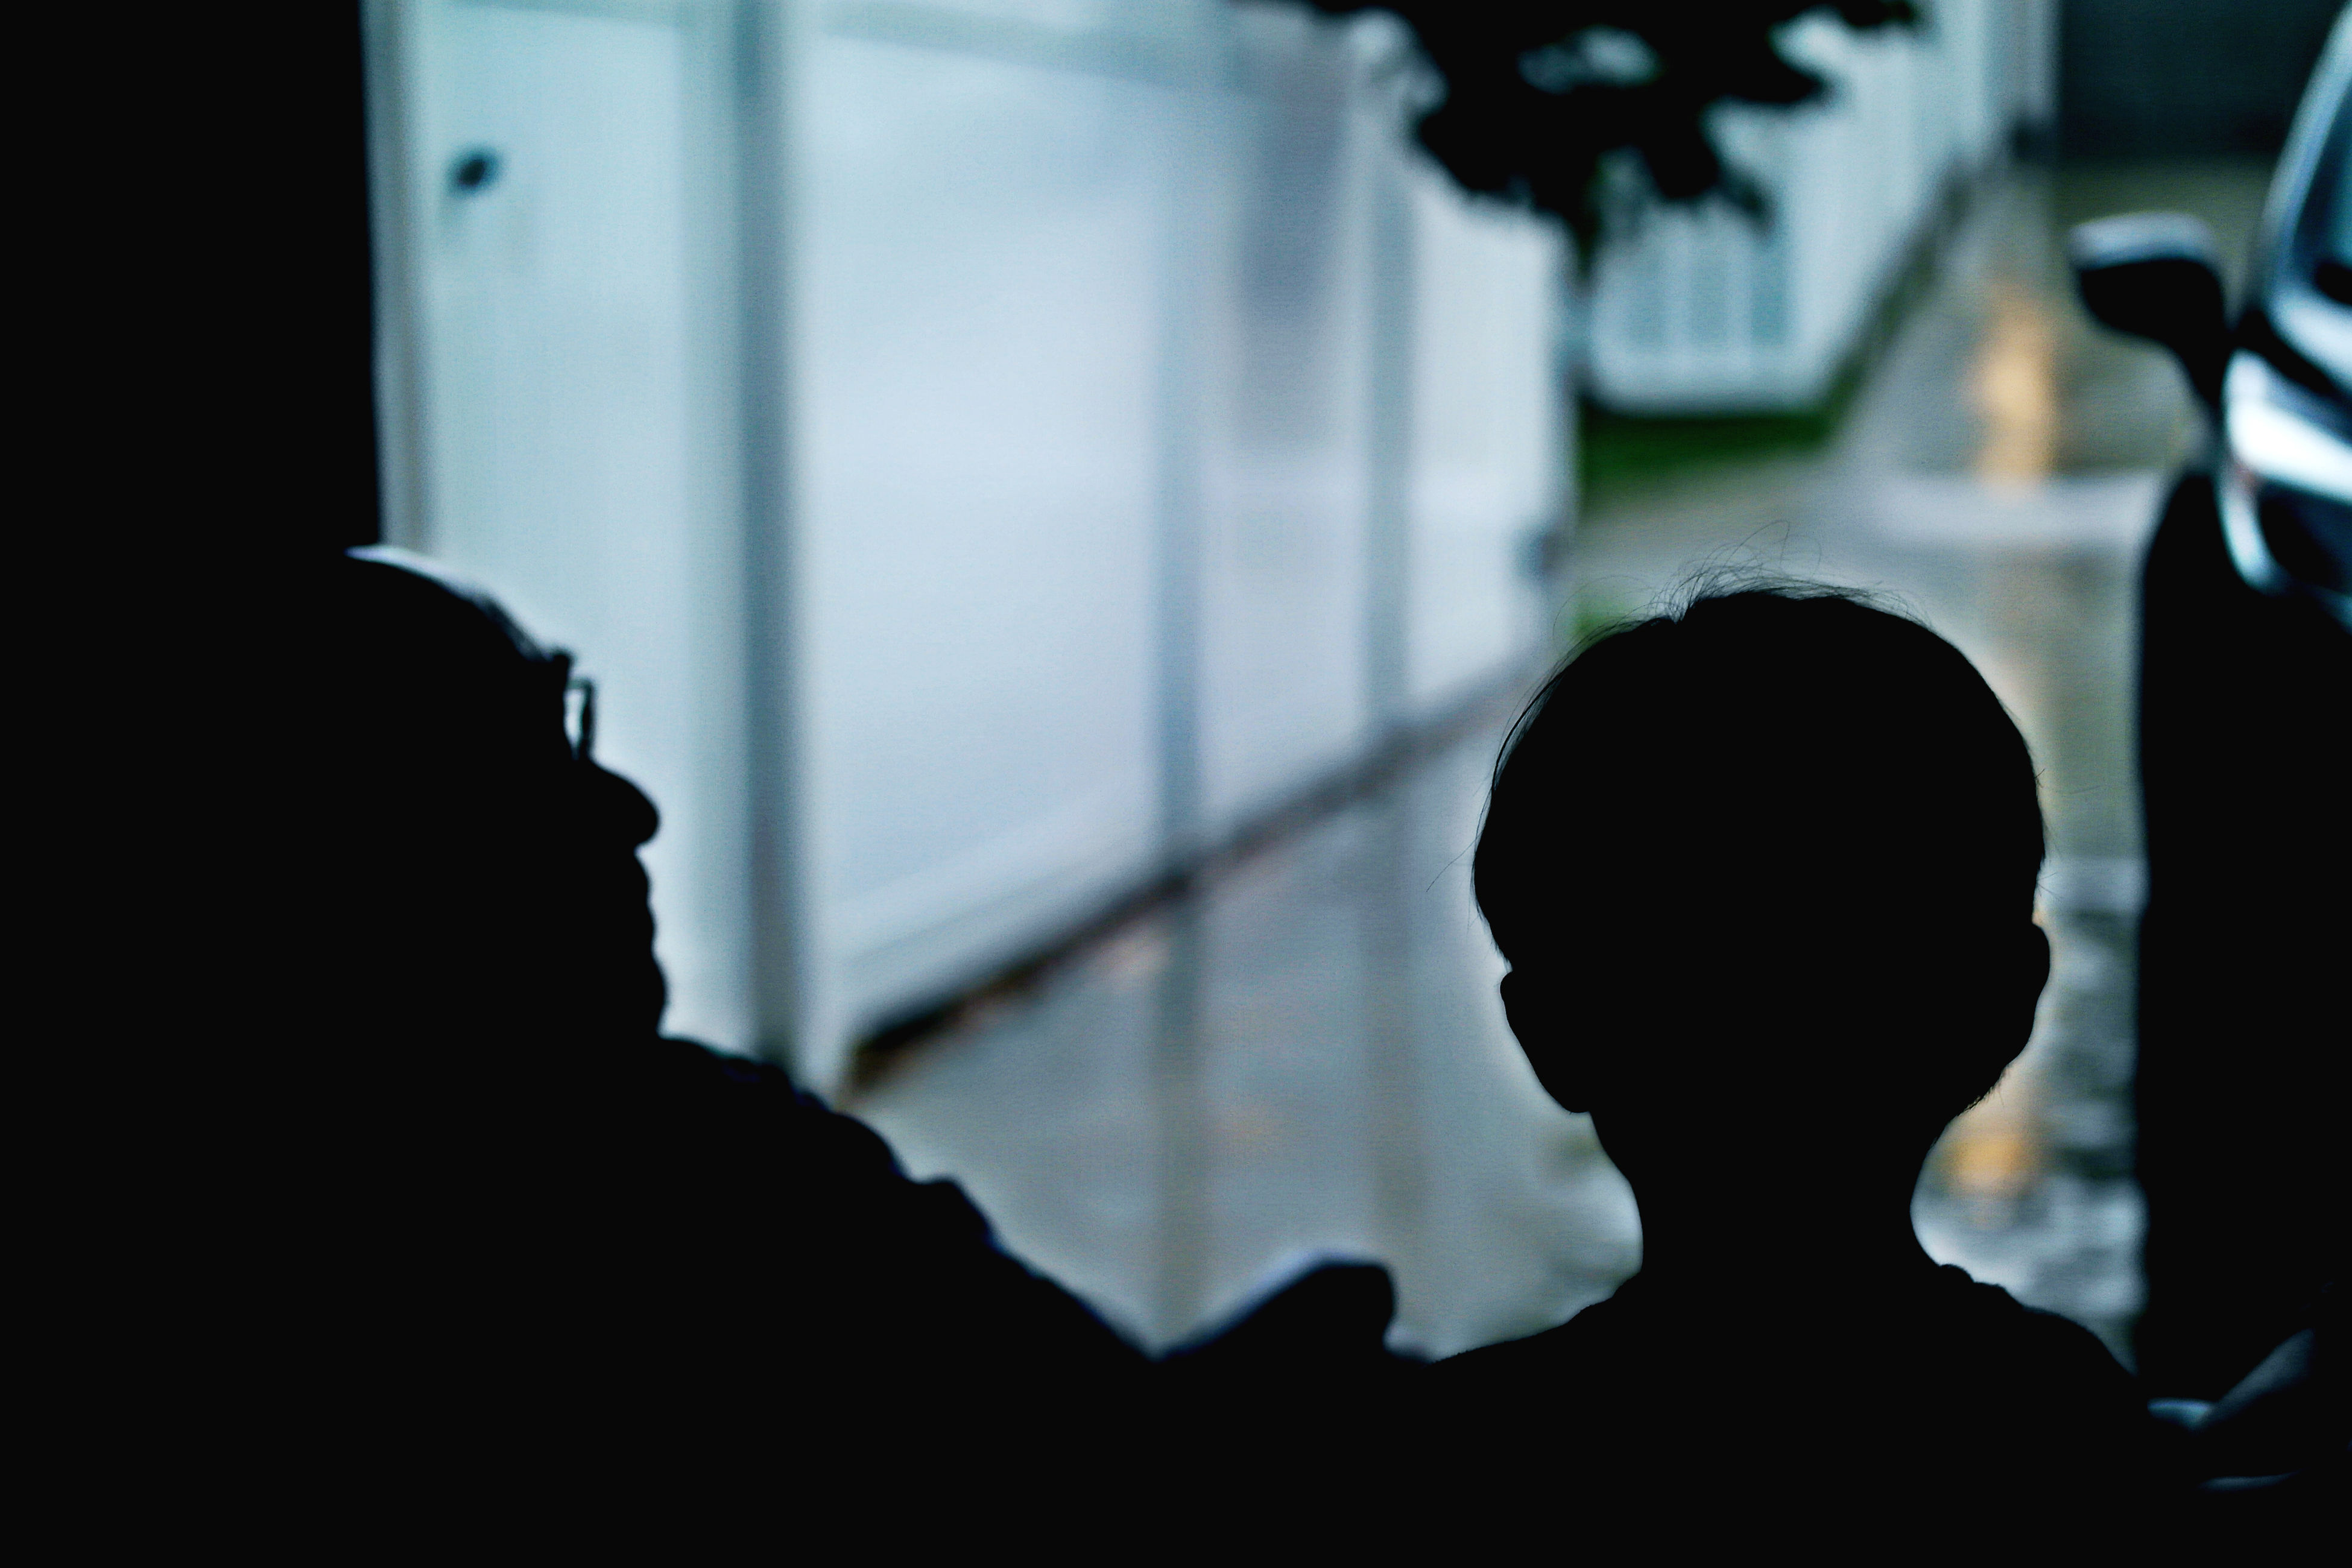 indoors, silhouette, headshot, window, focus on foreground, men, close-up, back lit, person, looking, darkroom, human hair